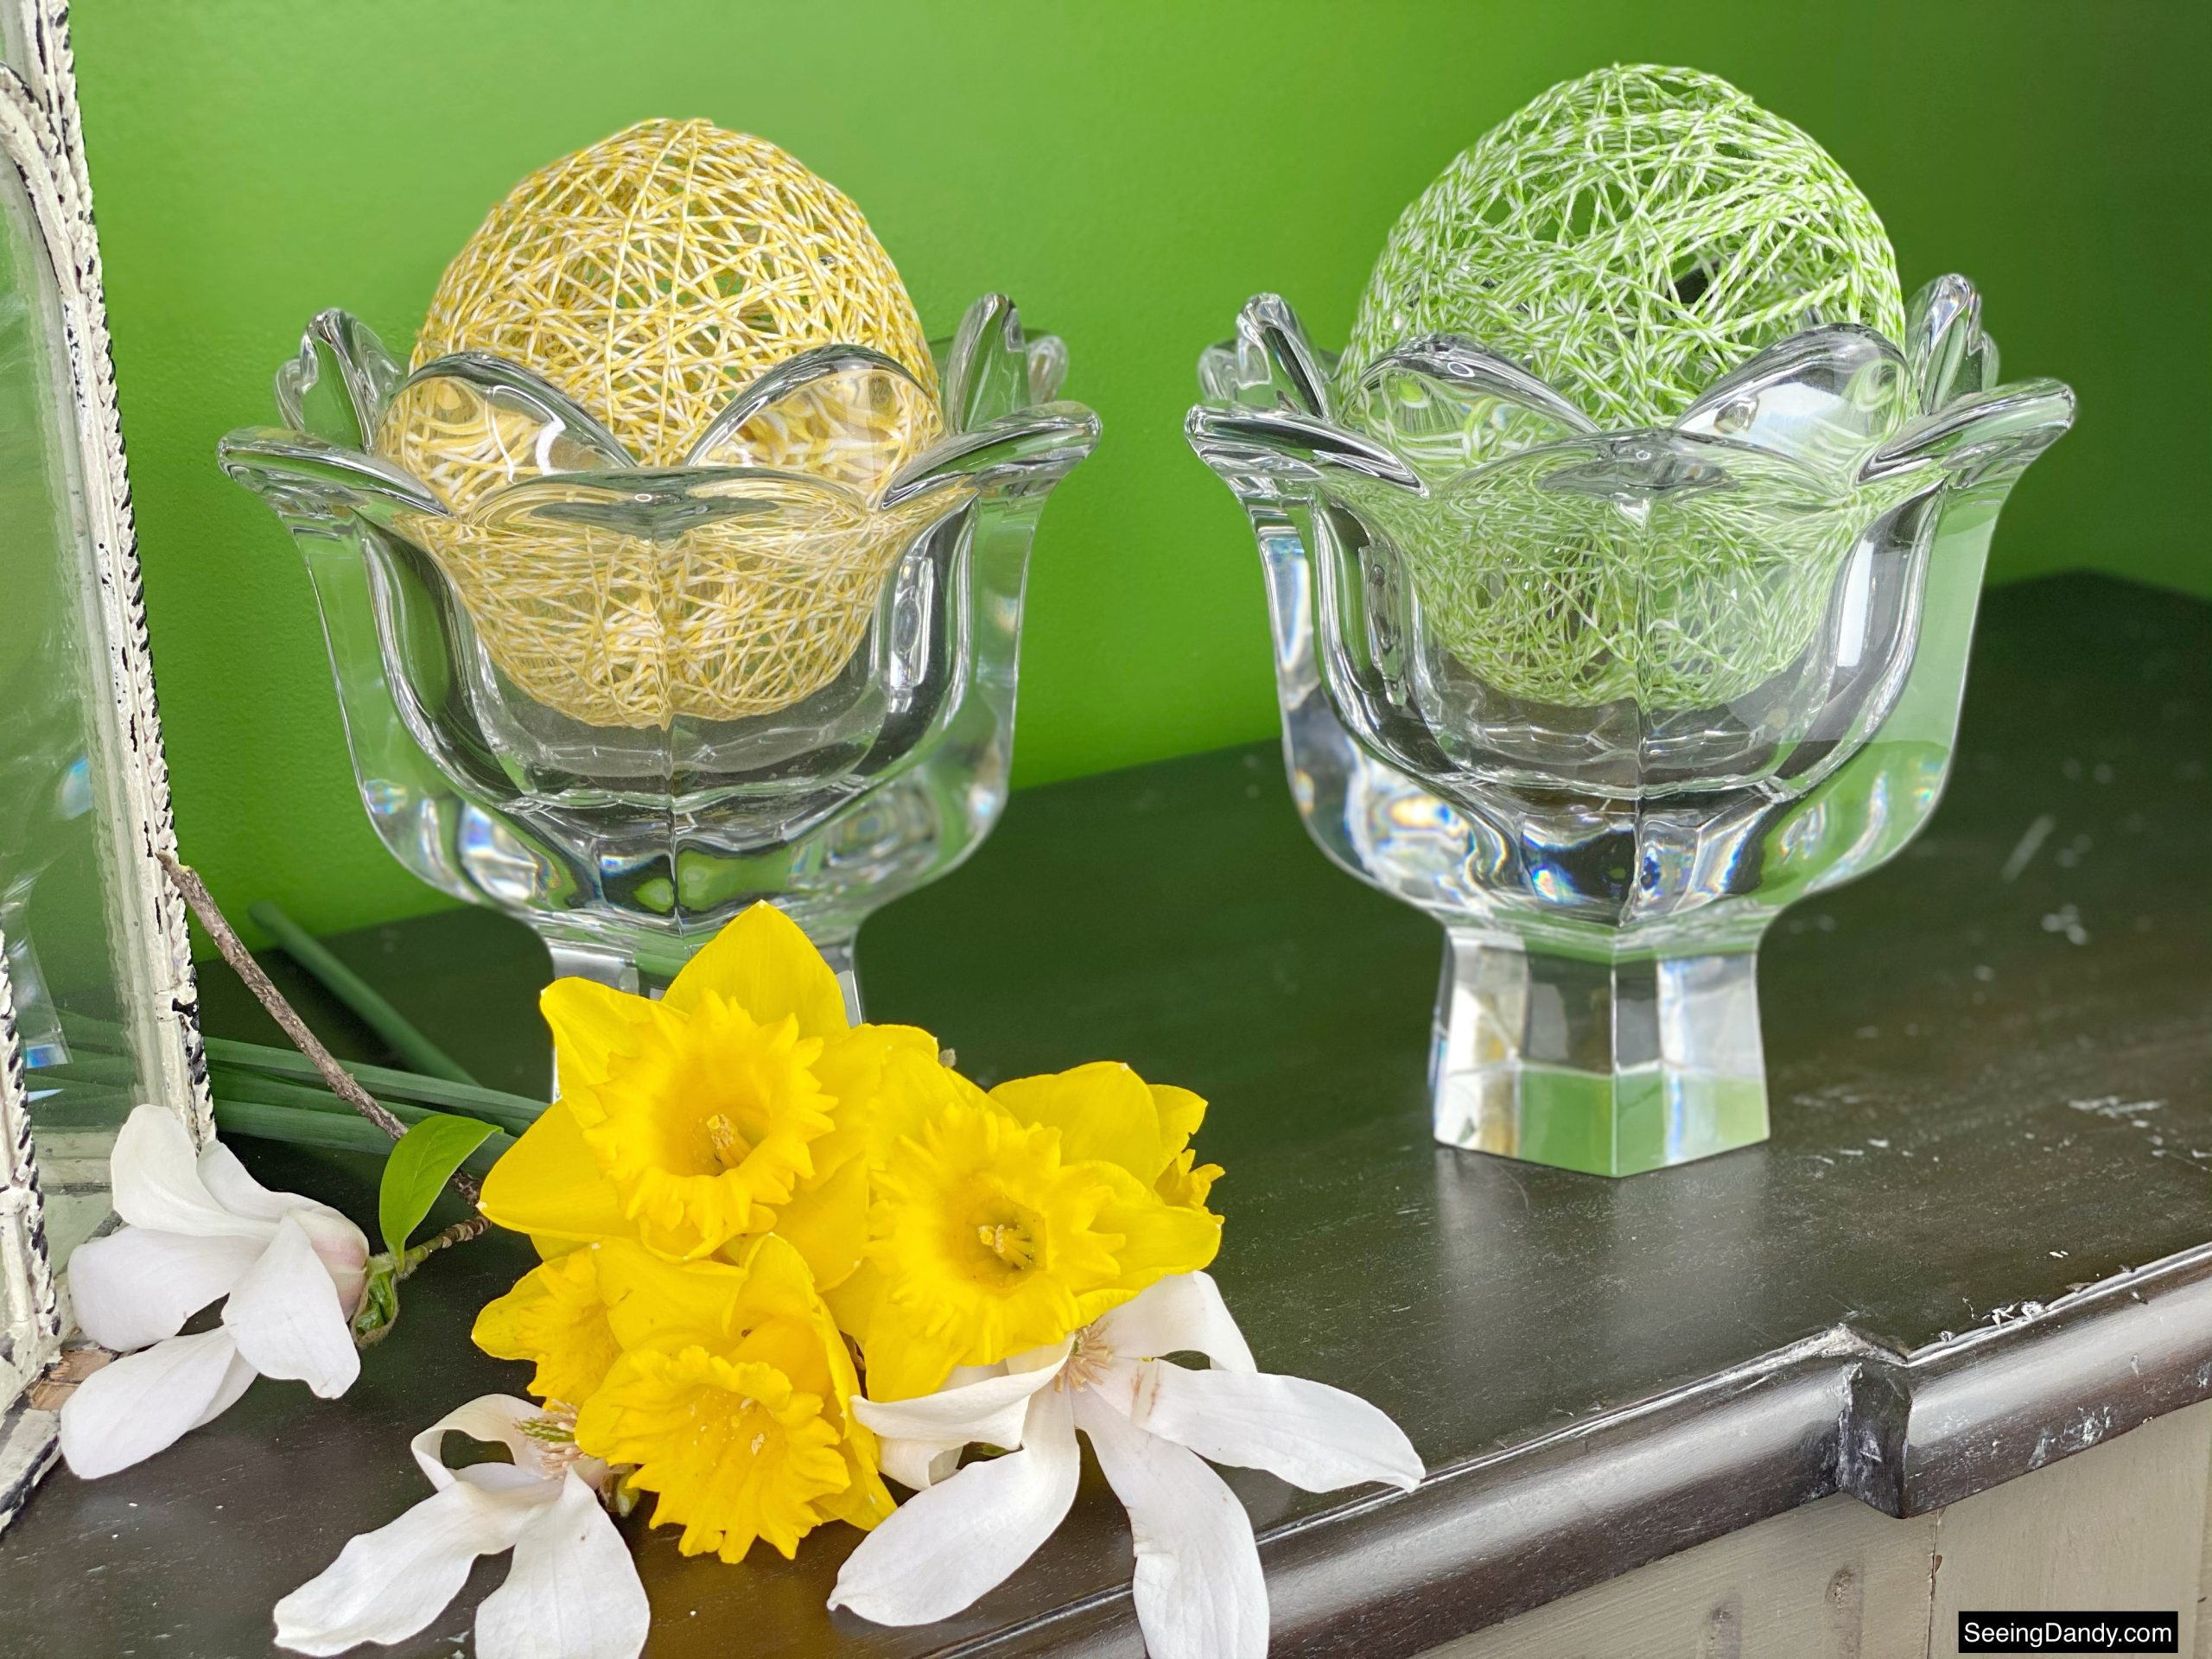 bakers twine easter eggs, string balloon egg, springtime, spring decor, easter decorations, farmhouse style, floral tree branch, spring flowers, yellow daffodils, crystal tulip candy dish, yellow string egg, green string egg